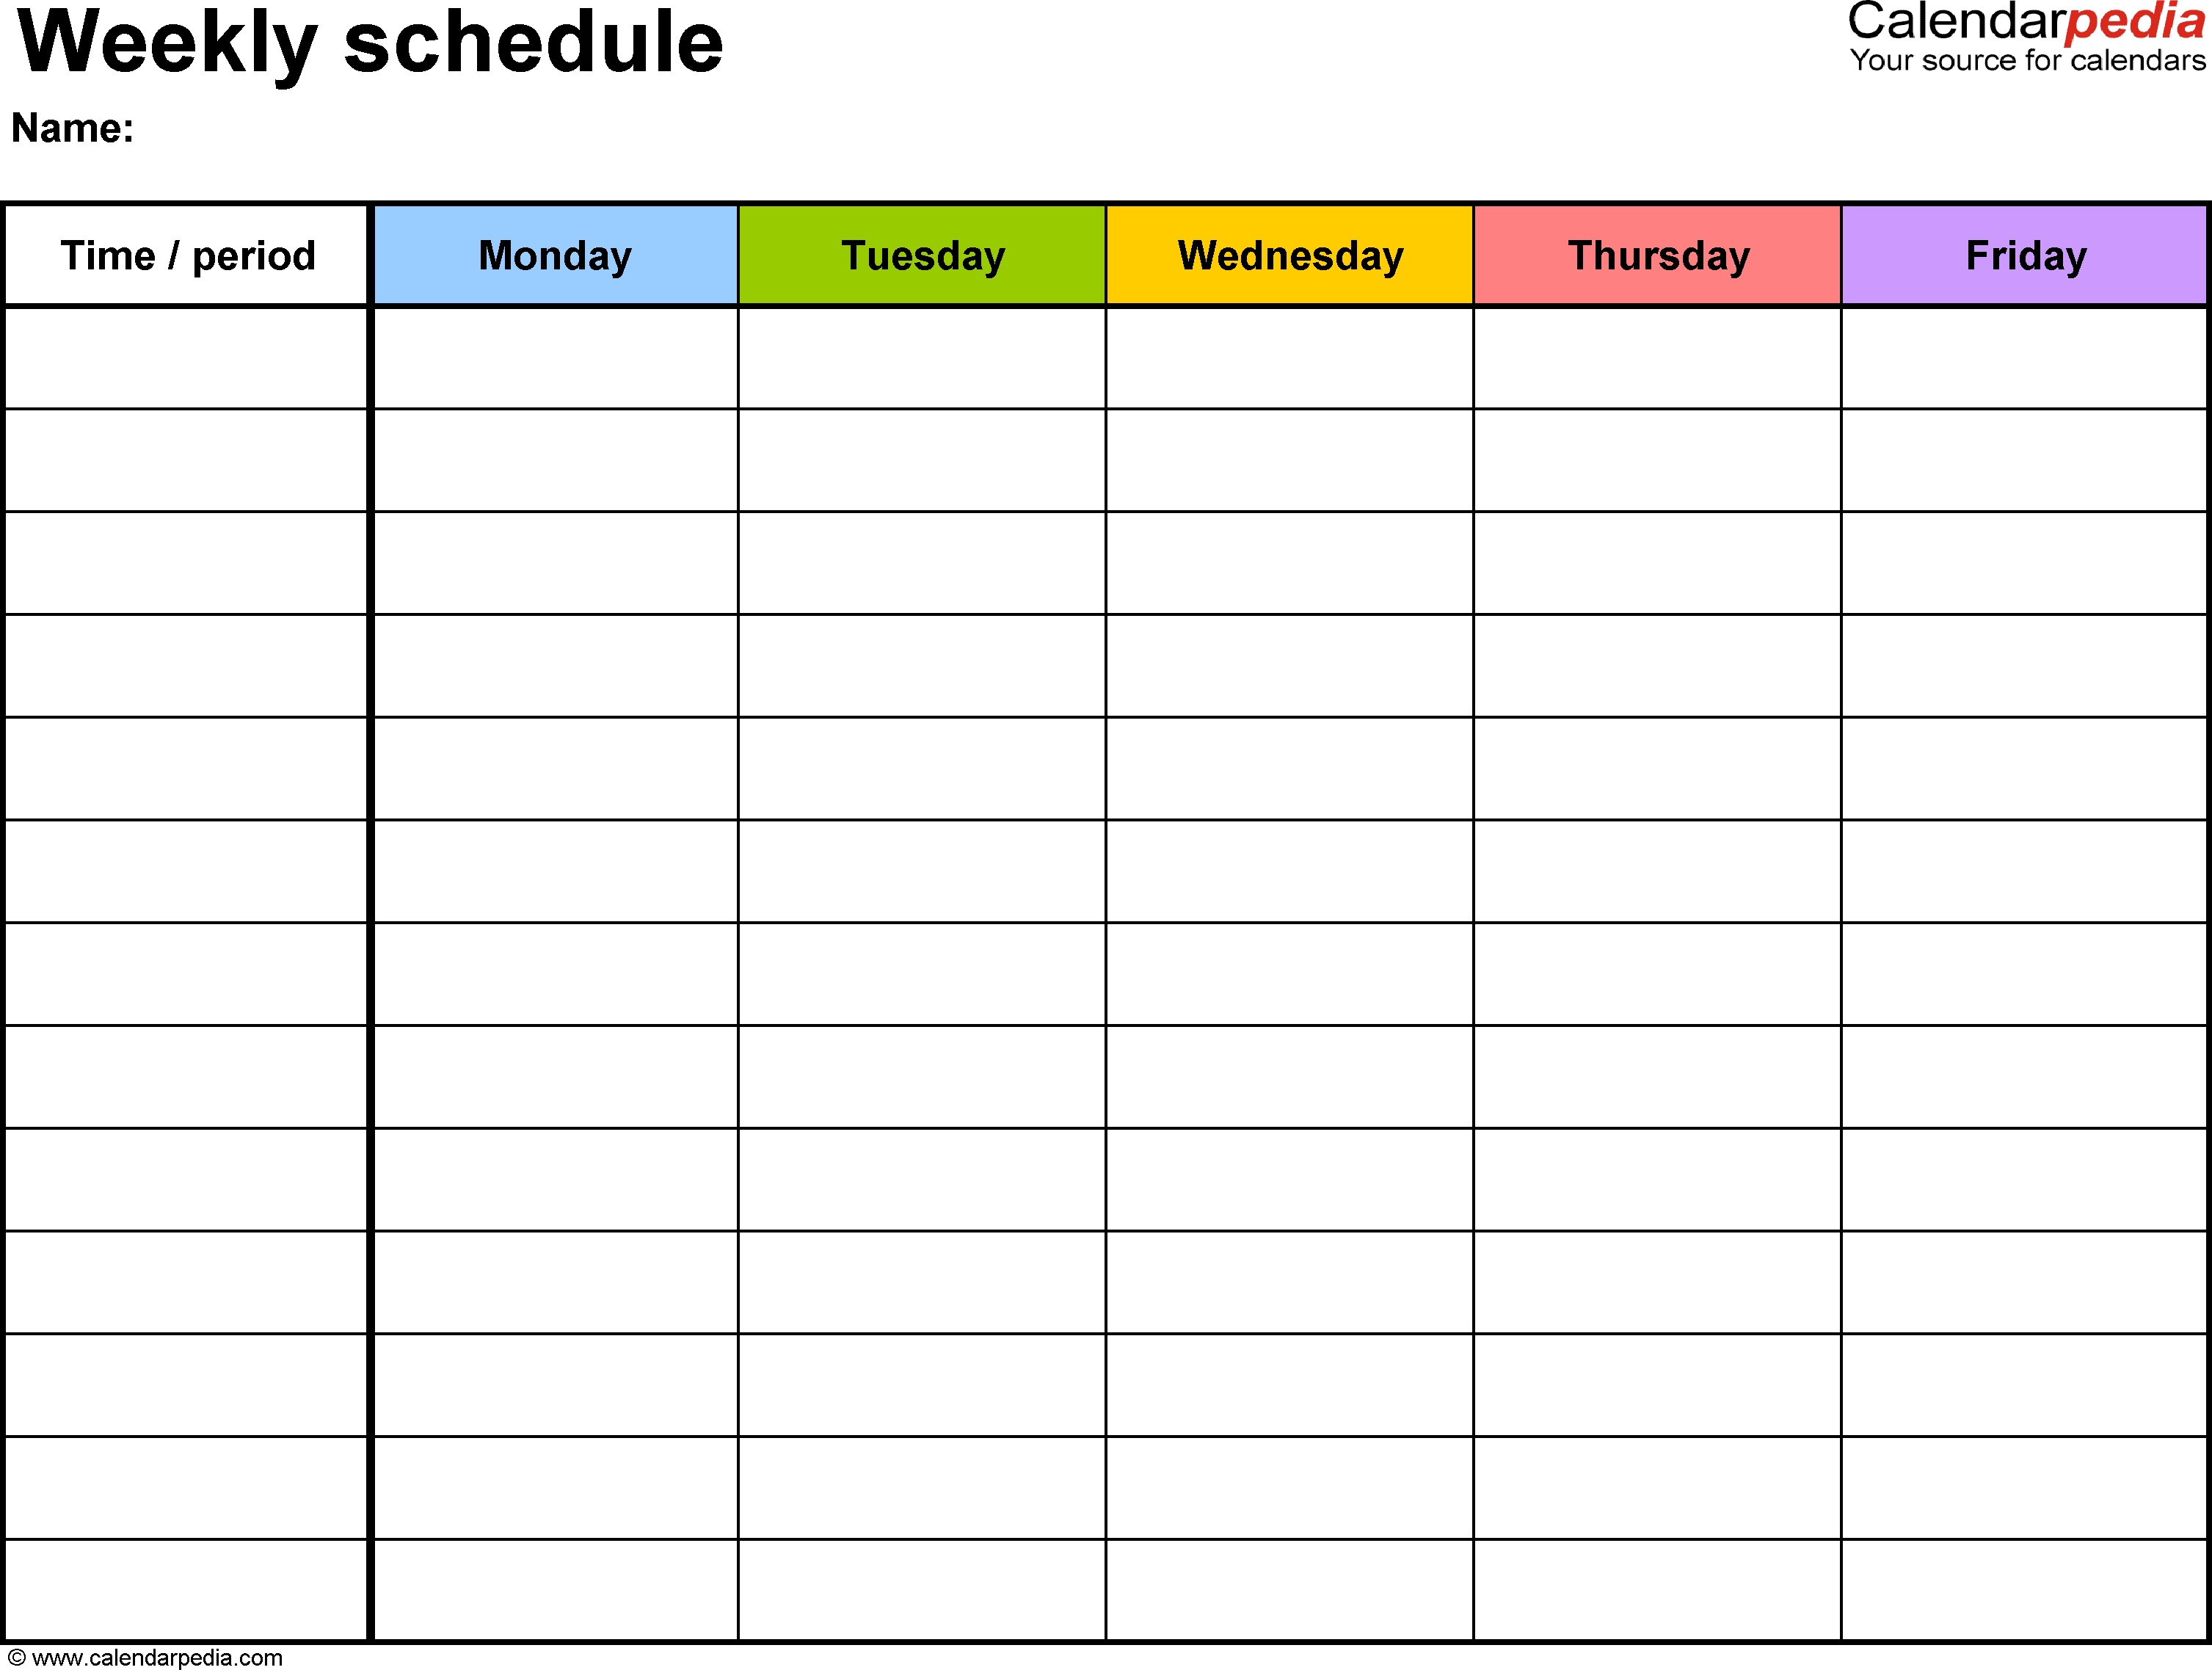 Free Weekly Schedule Templates For Word - 18 Templates intended for Blank Week Calender With Times